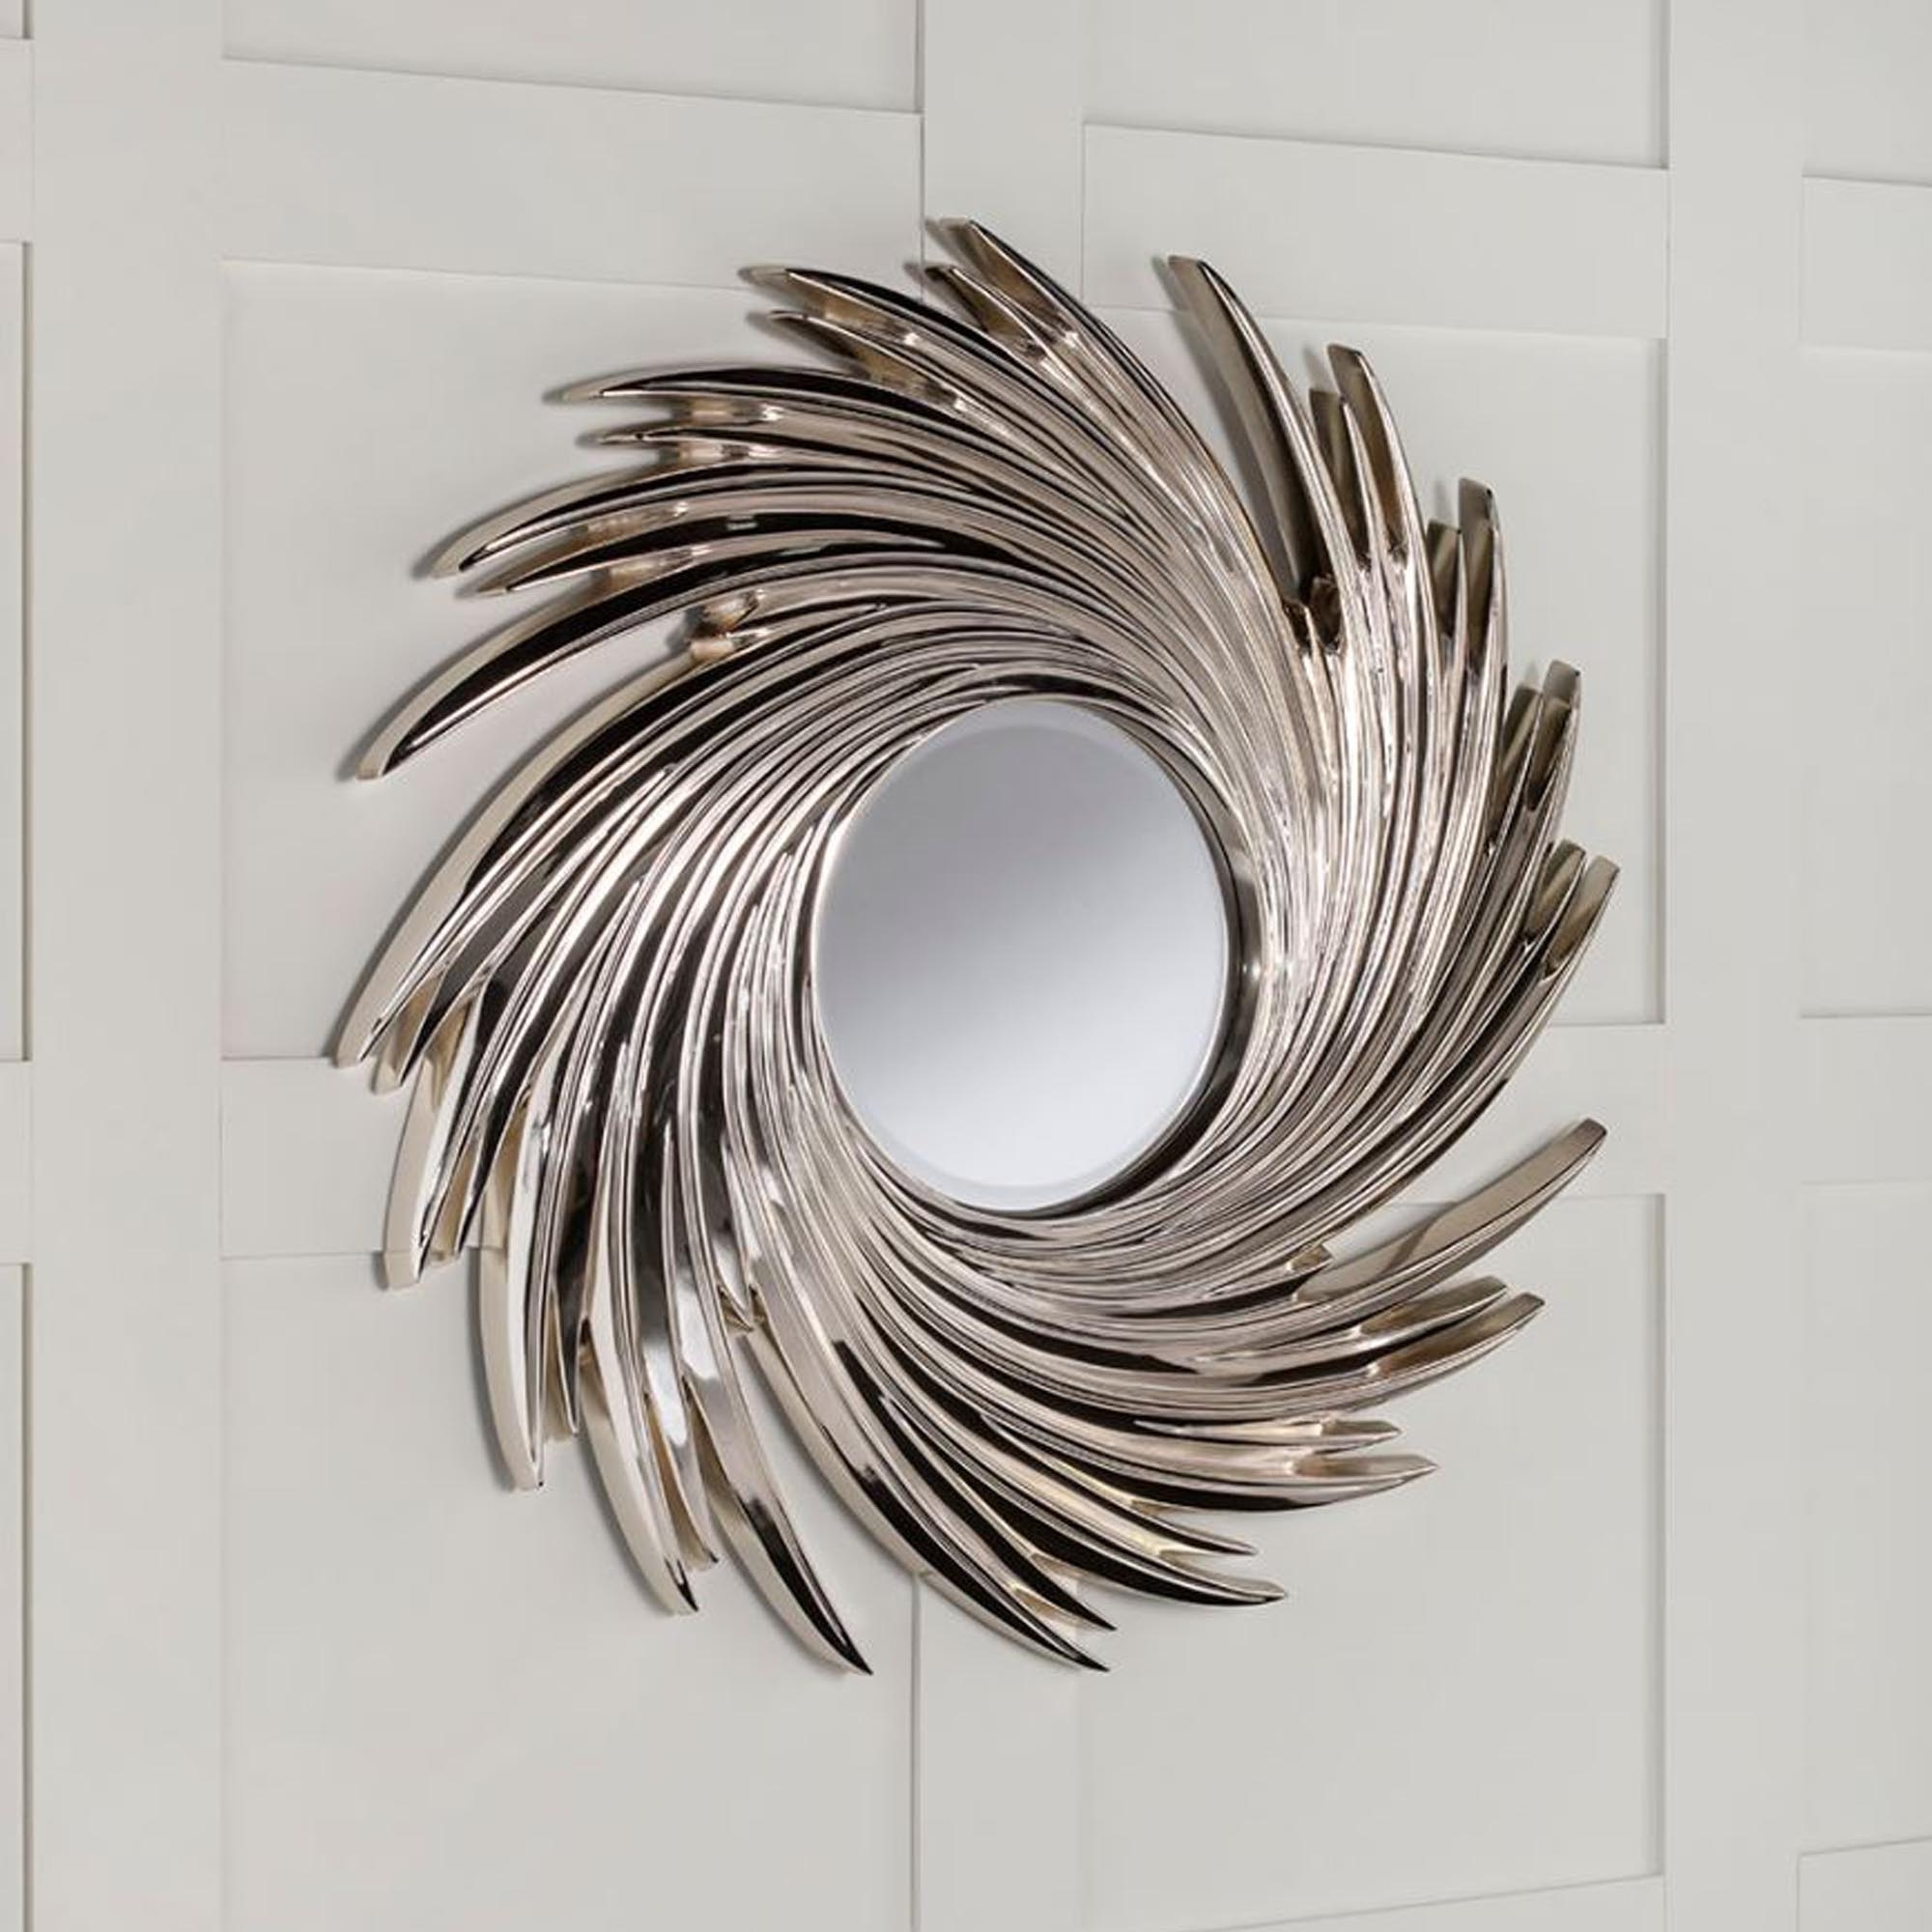 Widely Used Contemporary Wall Mirrors With Chrome Silver Swirl Contemporary Wall Mirror (View 8 of 20)